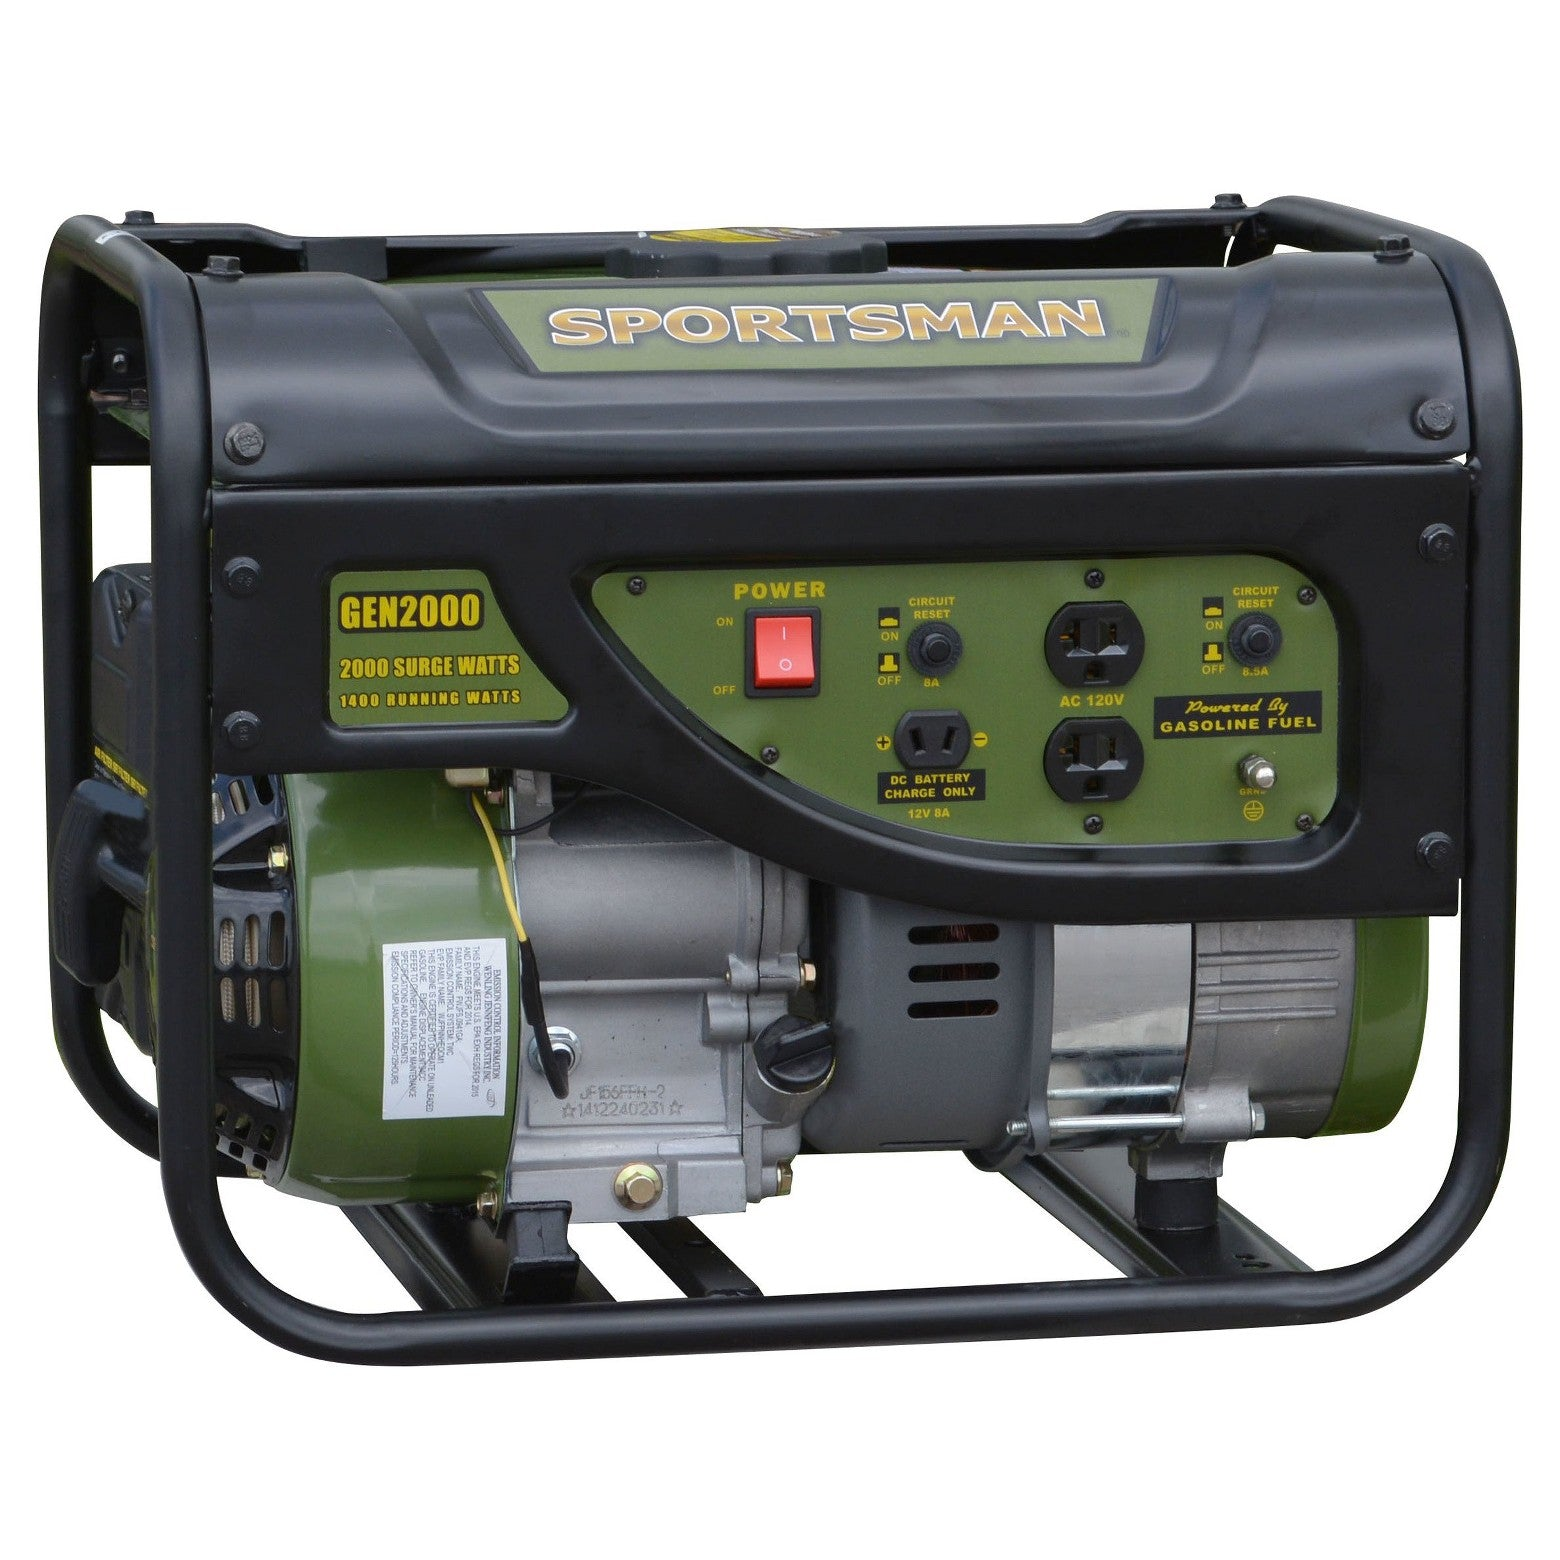 Sportsman 2000 Watt Gasoline Generator Price includes shipping to